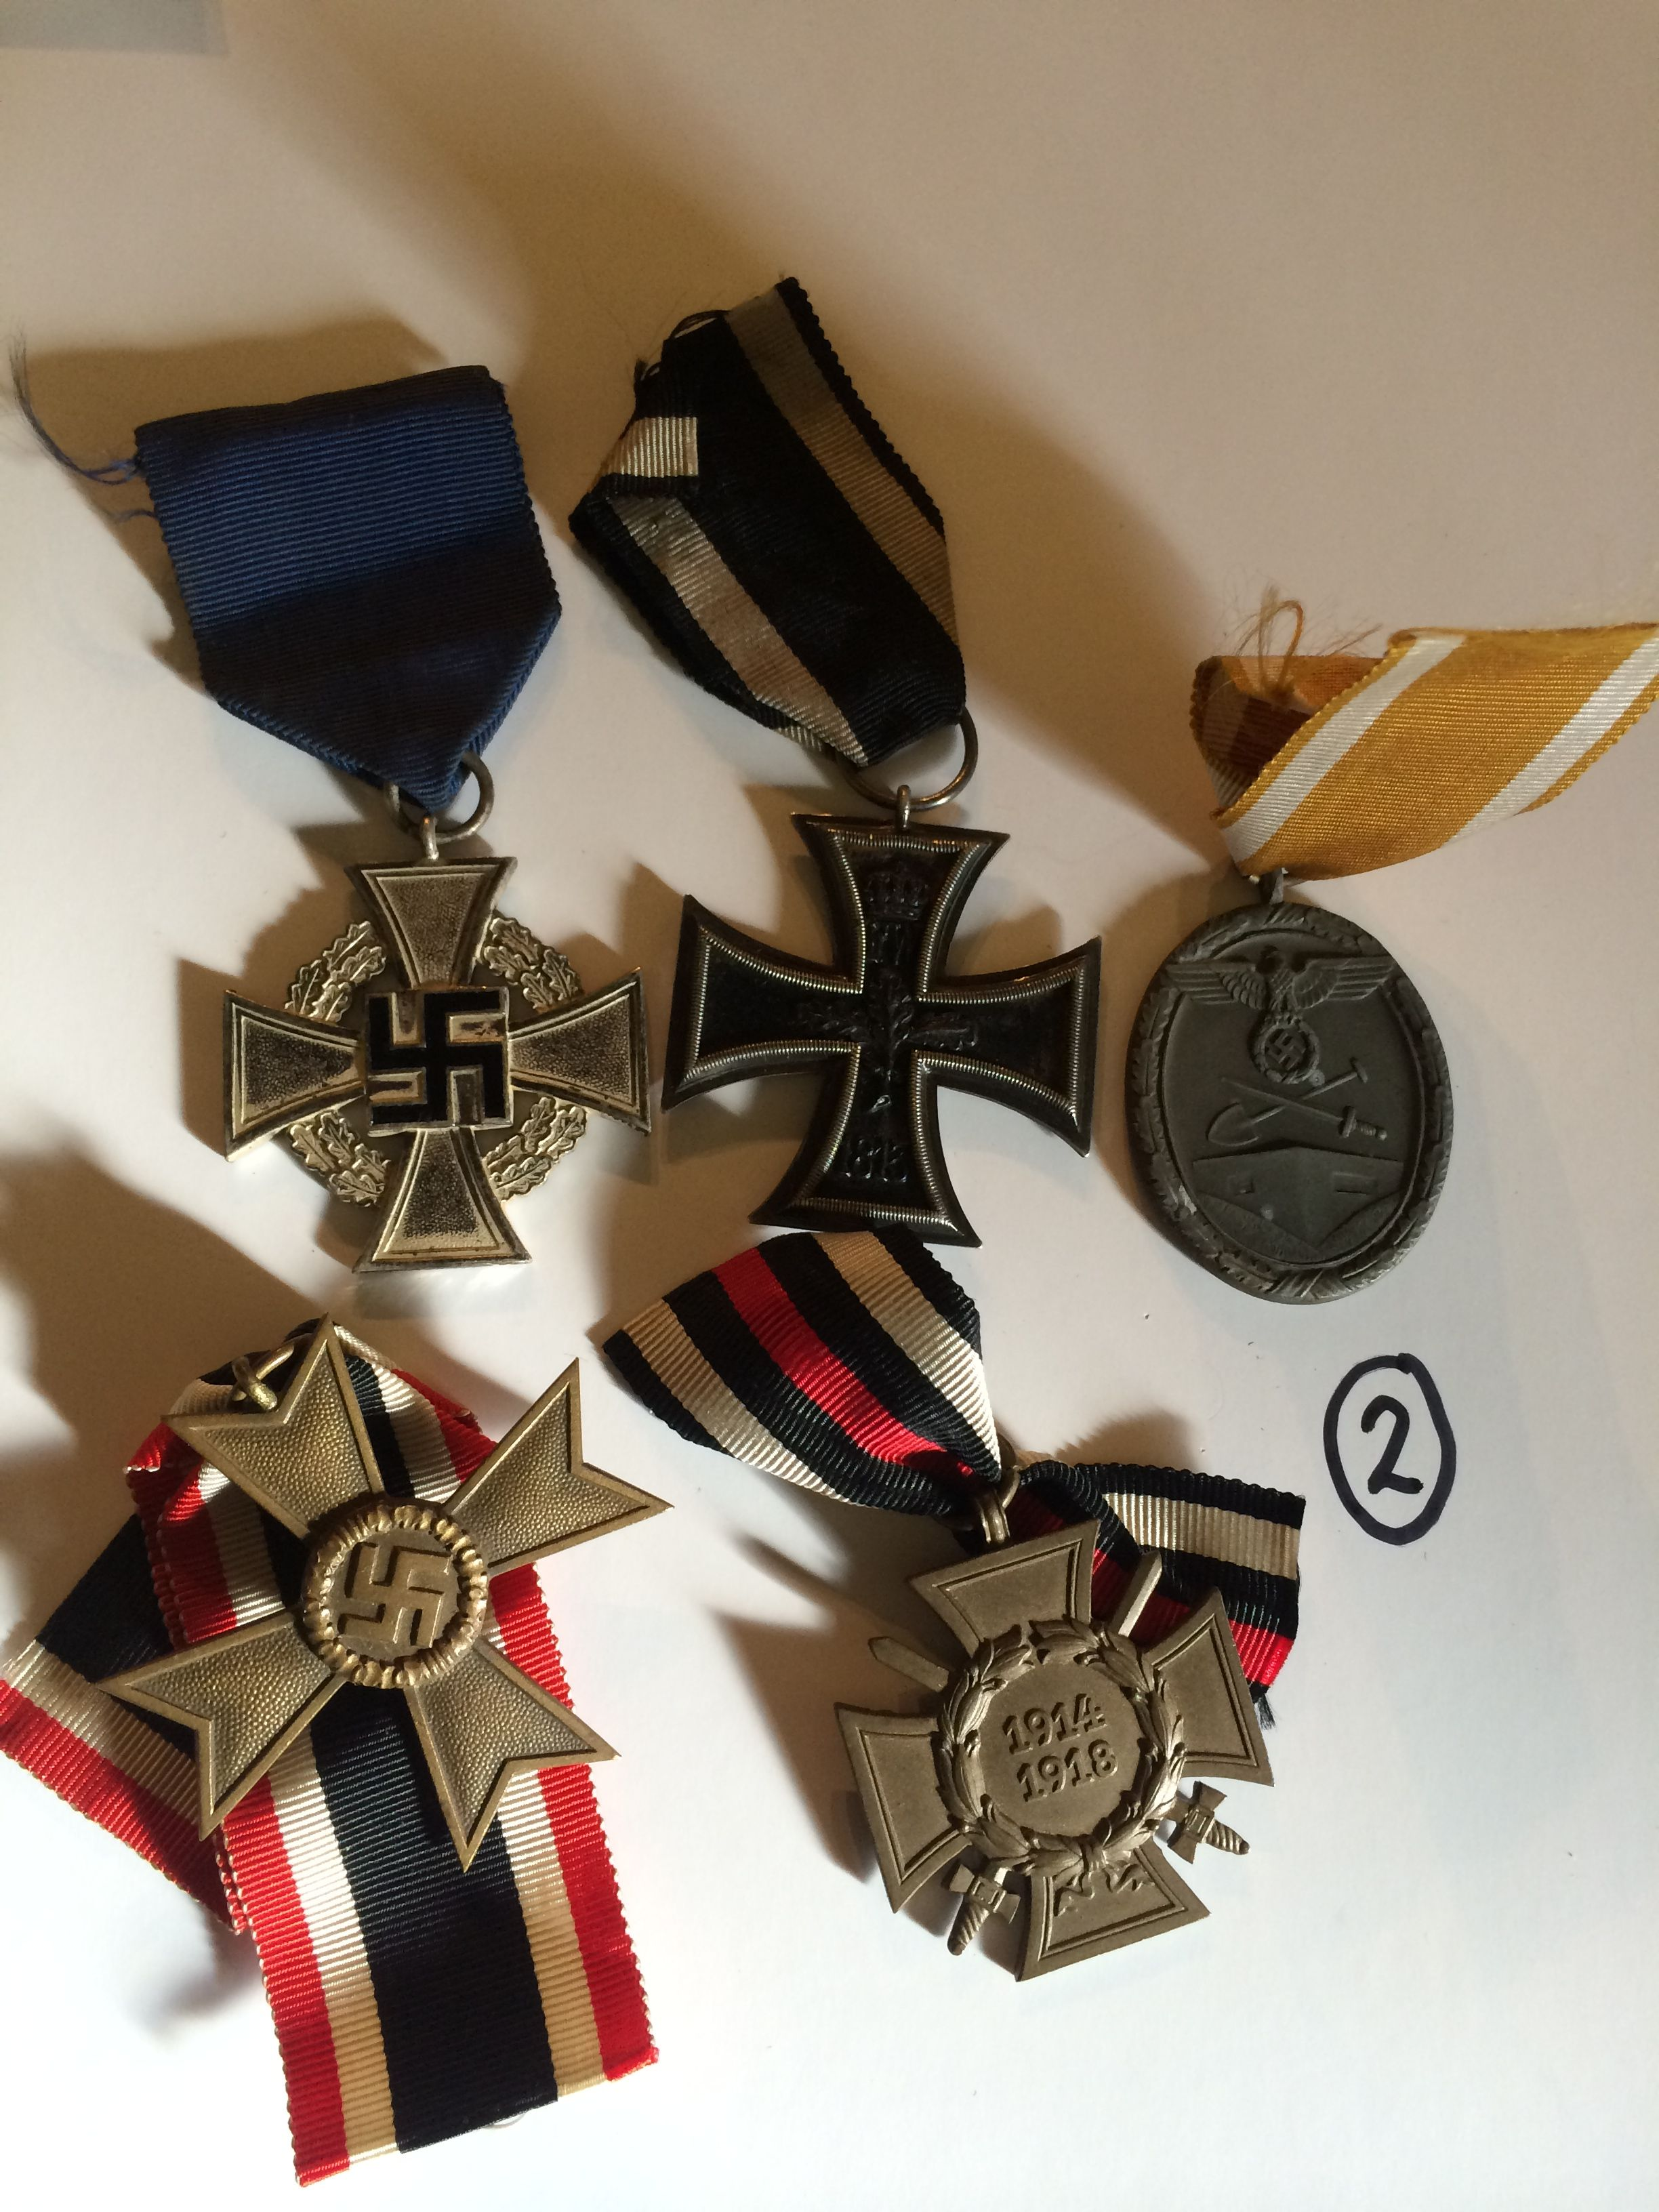 Group of 5 German WW1/WW2 Medals and Ribbons - bid on this before 27th Feb 2015! http://www.bidonthis.co.uk/event/Yeovil-Auction-Rooms/eventless/Group-of-5-German-WW1_WW2-Medals-and-Ribbons